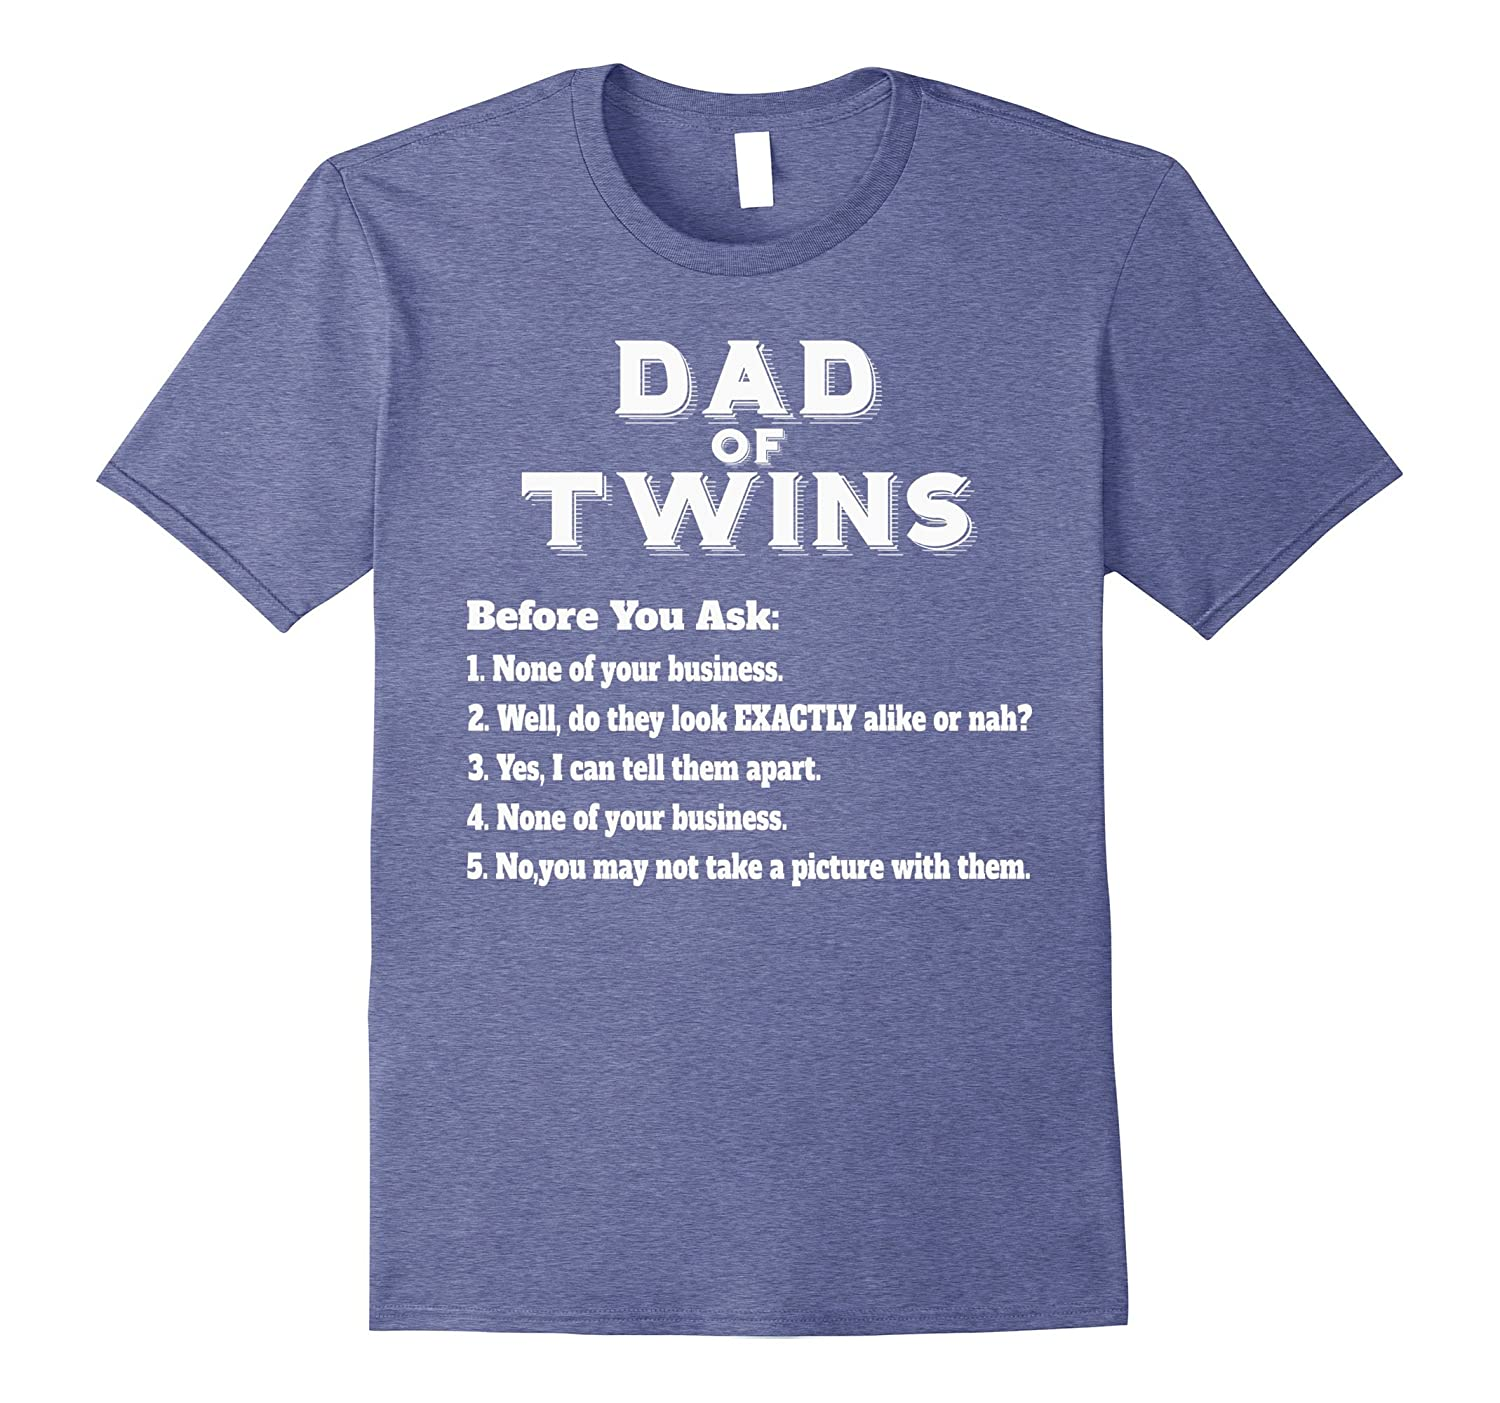 Mens Funny Twins Dad T-shirt for Father's Day Common Questions